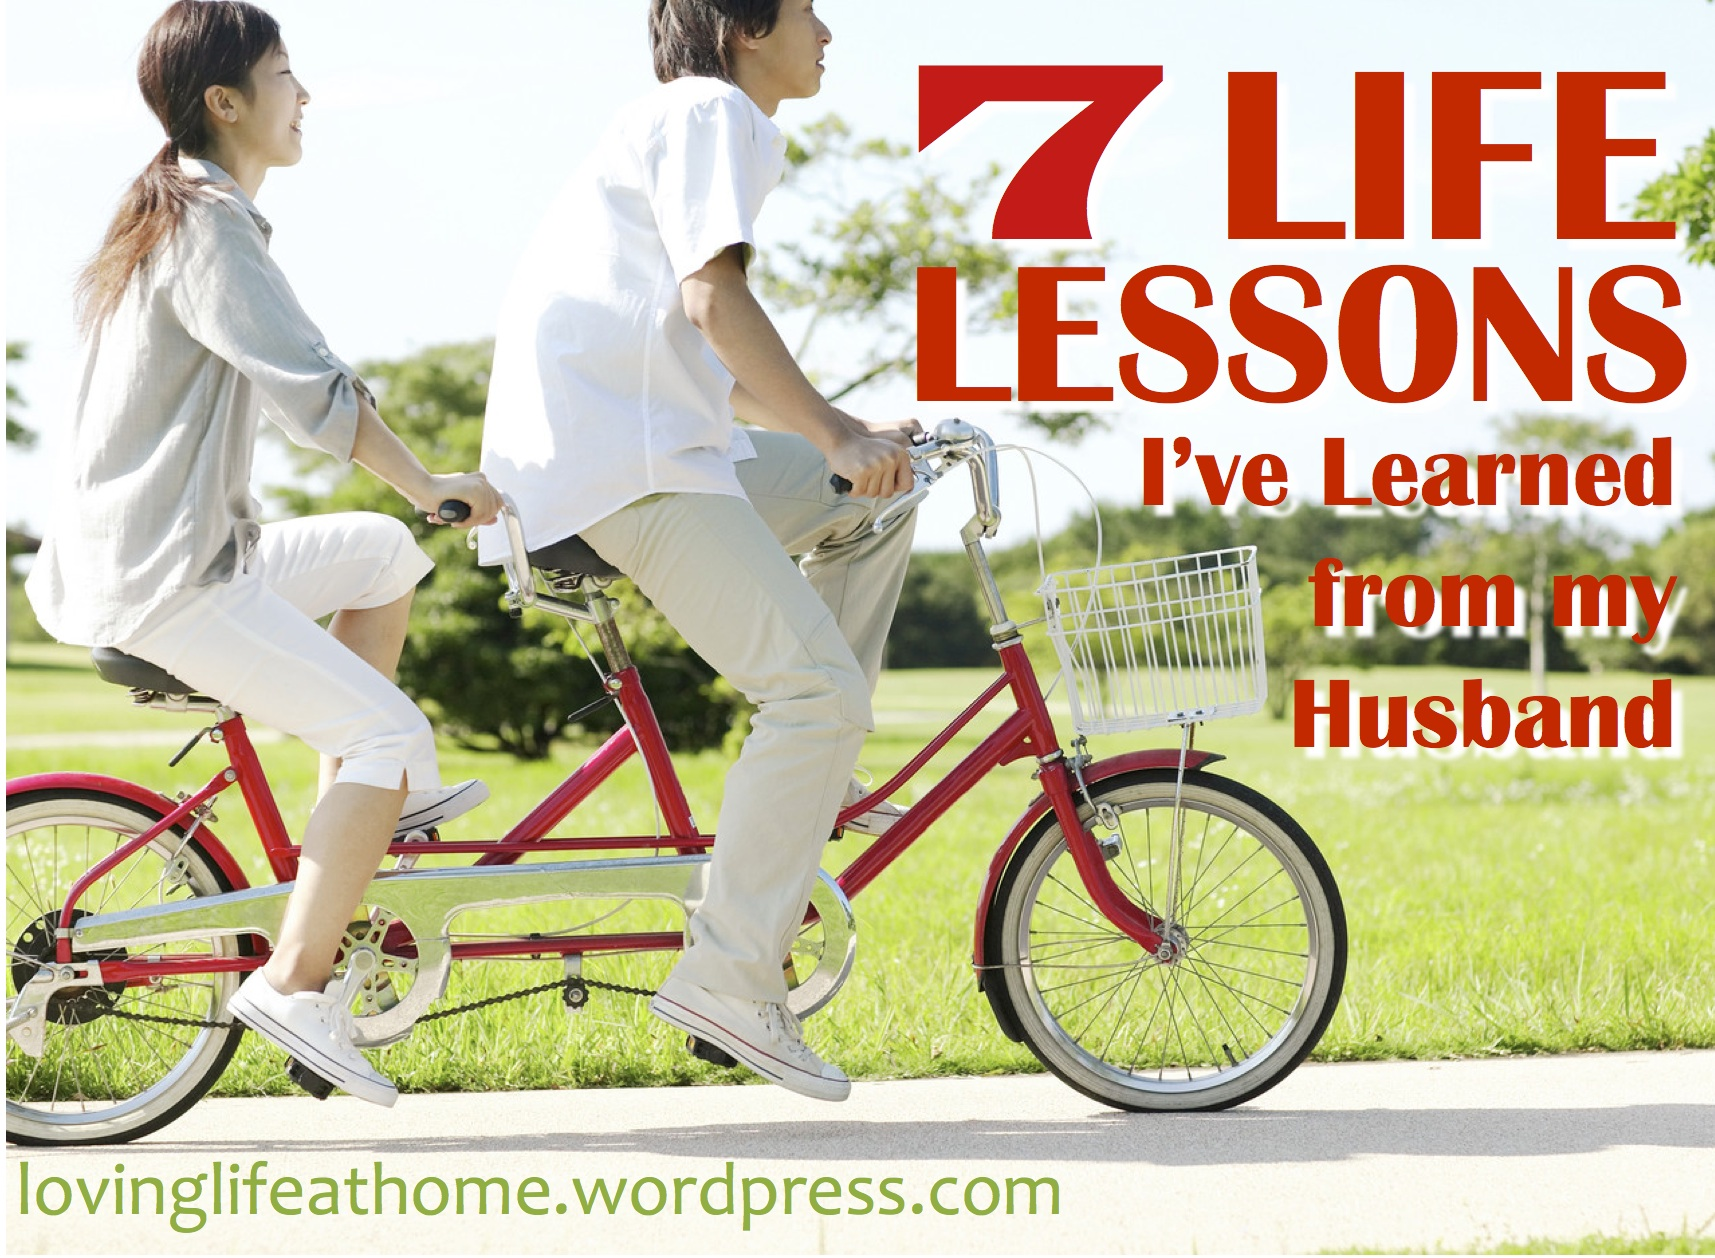 7 Life Lessons I've Learned From My Husband